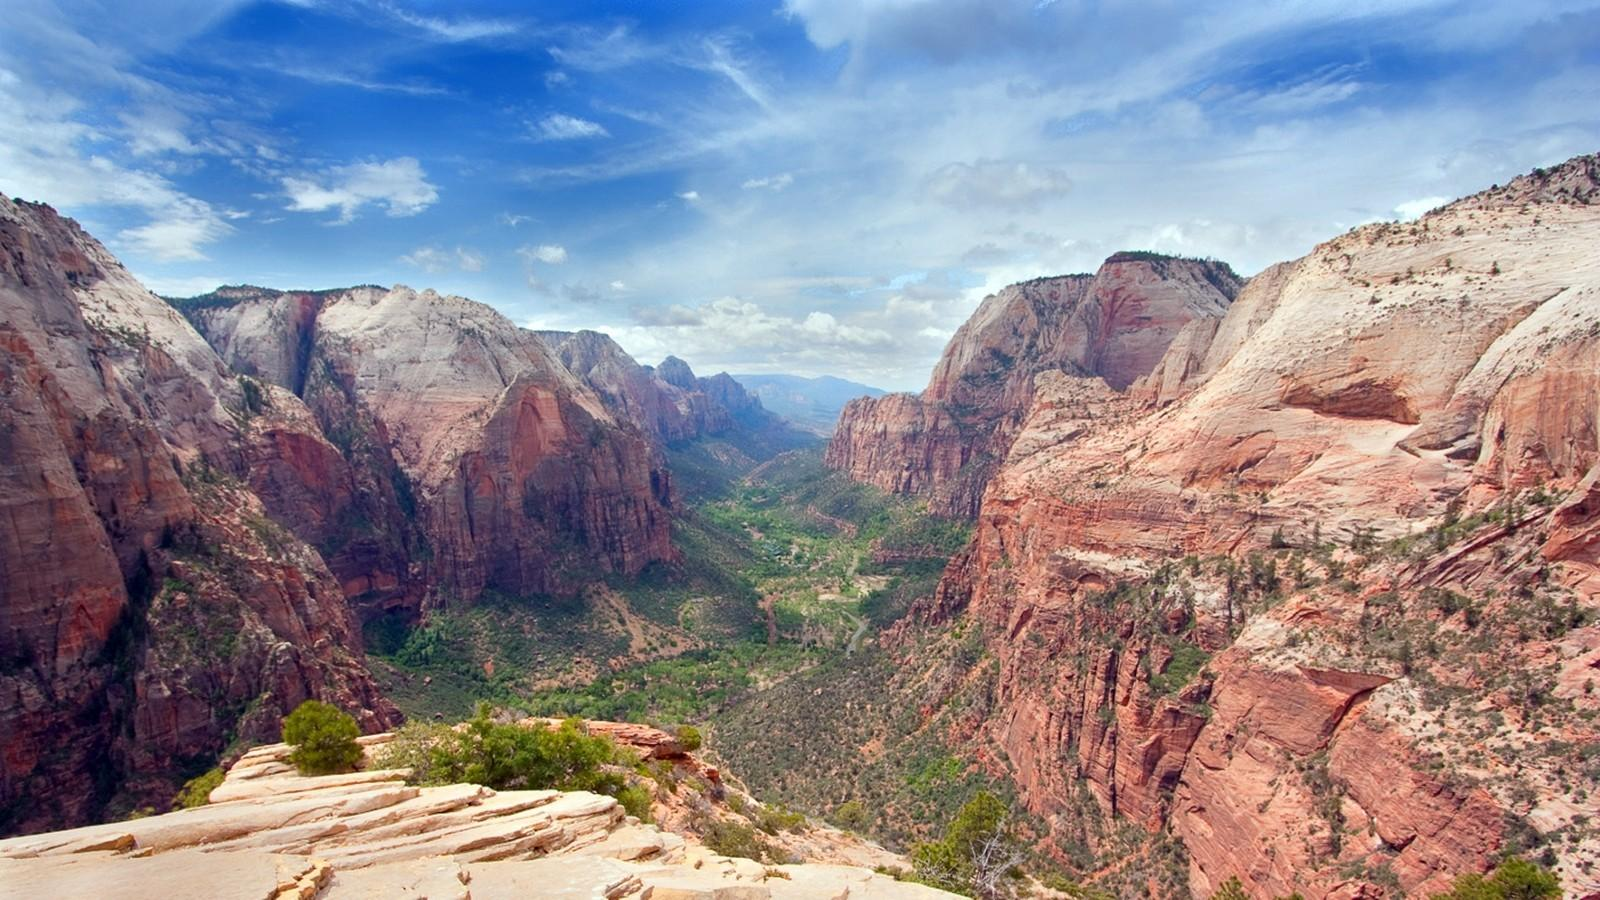 Utah landing zion national park skies ravine wallpaper 78892 1600x900